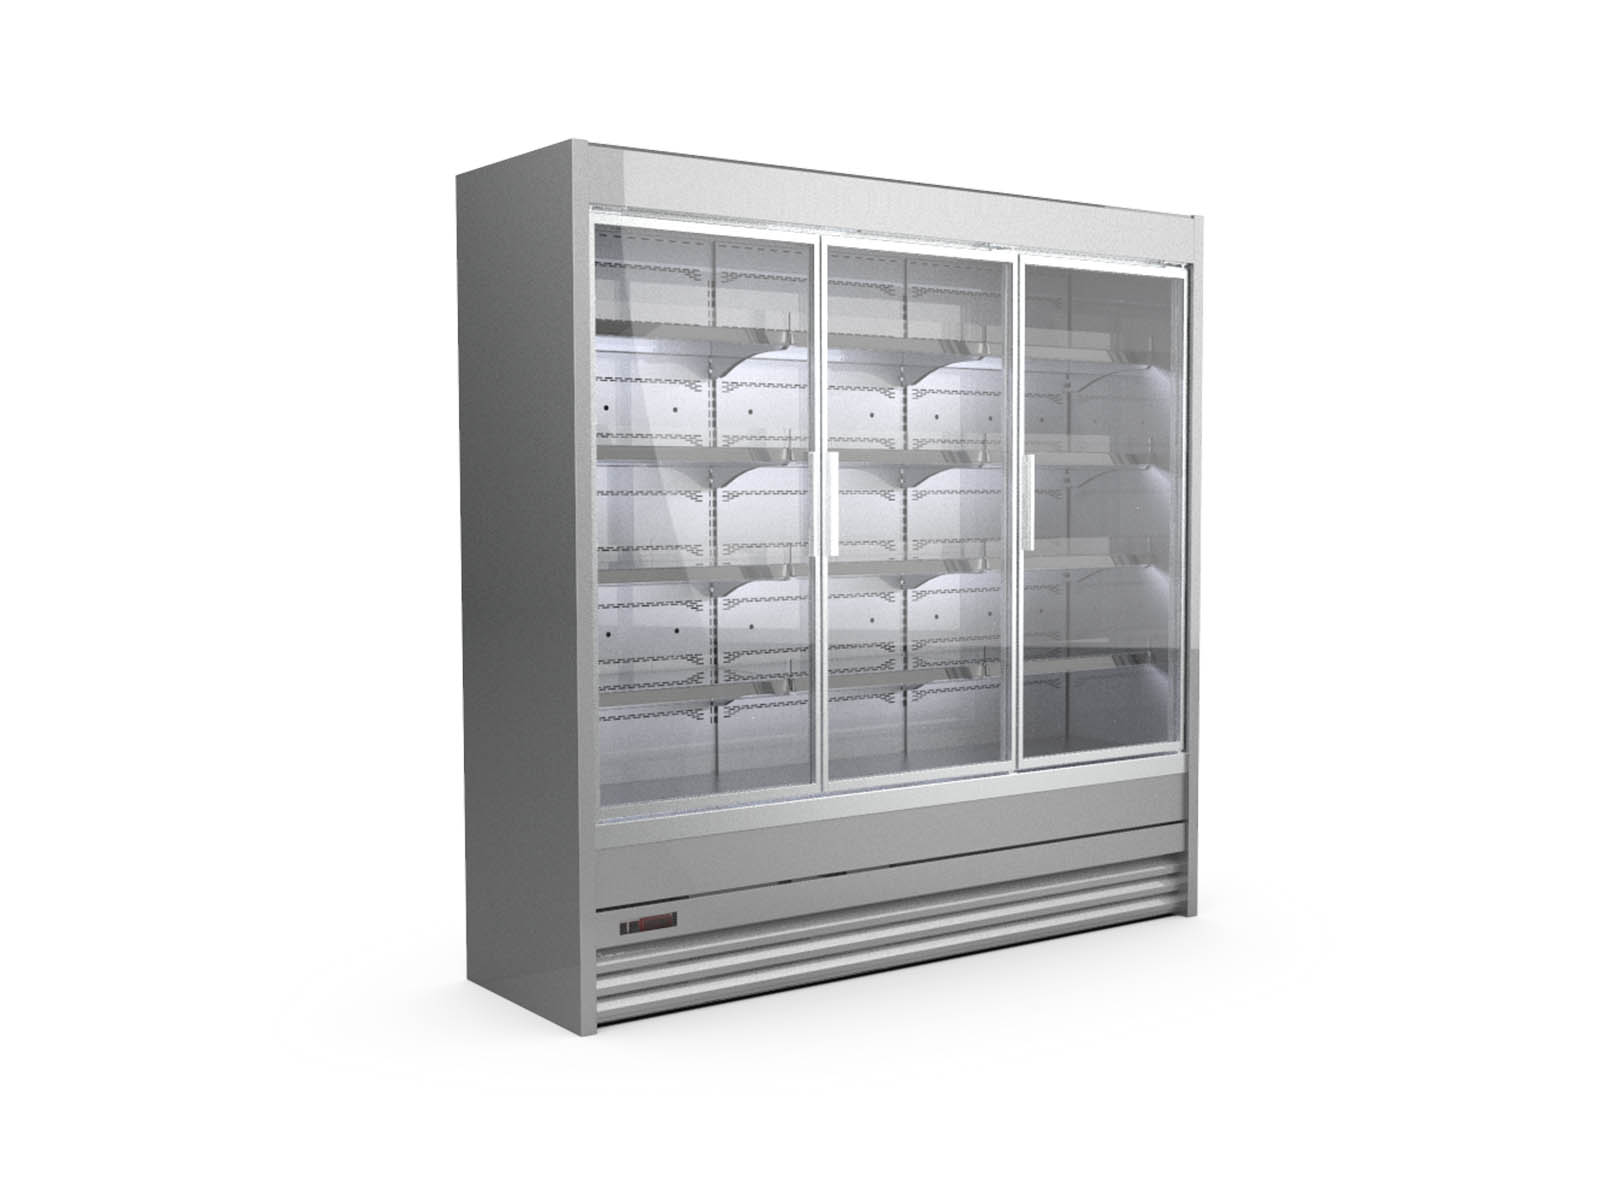 Refrigerated shelvings